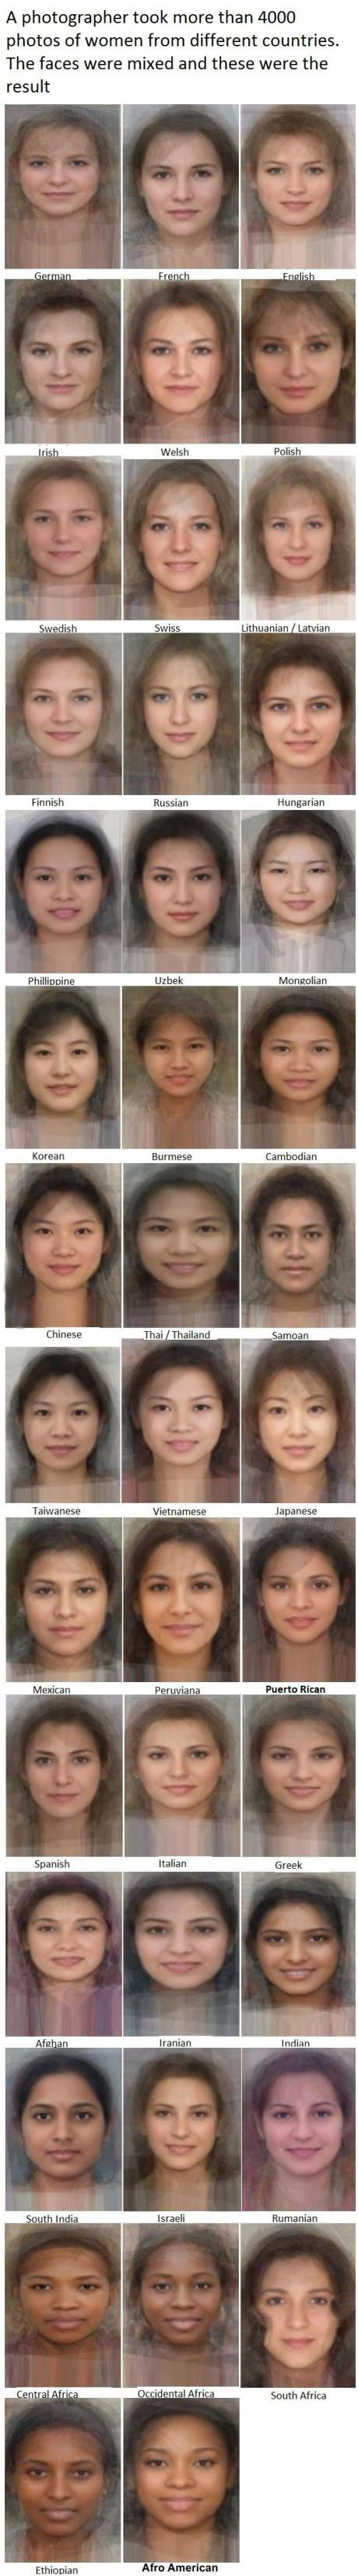 Using photos of women across 41 countries, a photographer has merged the images using Face Research software to create one face for each country: